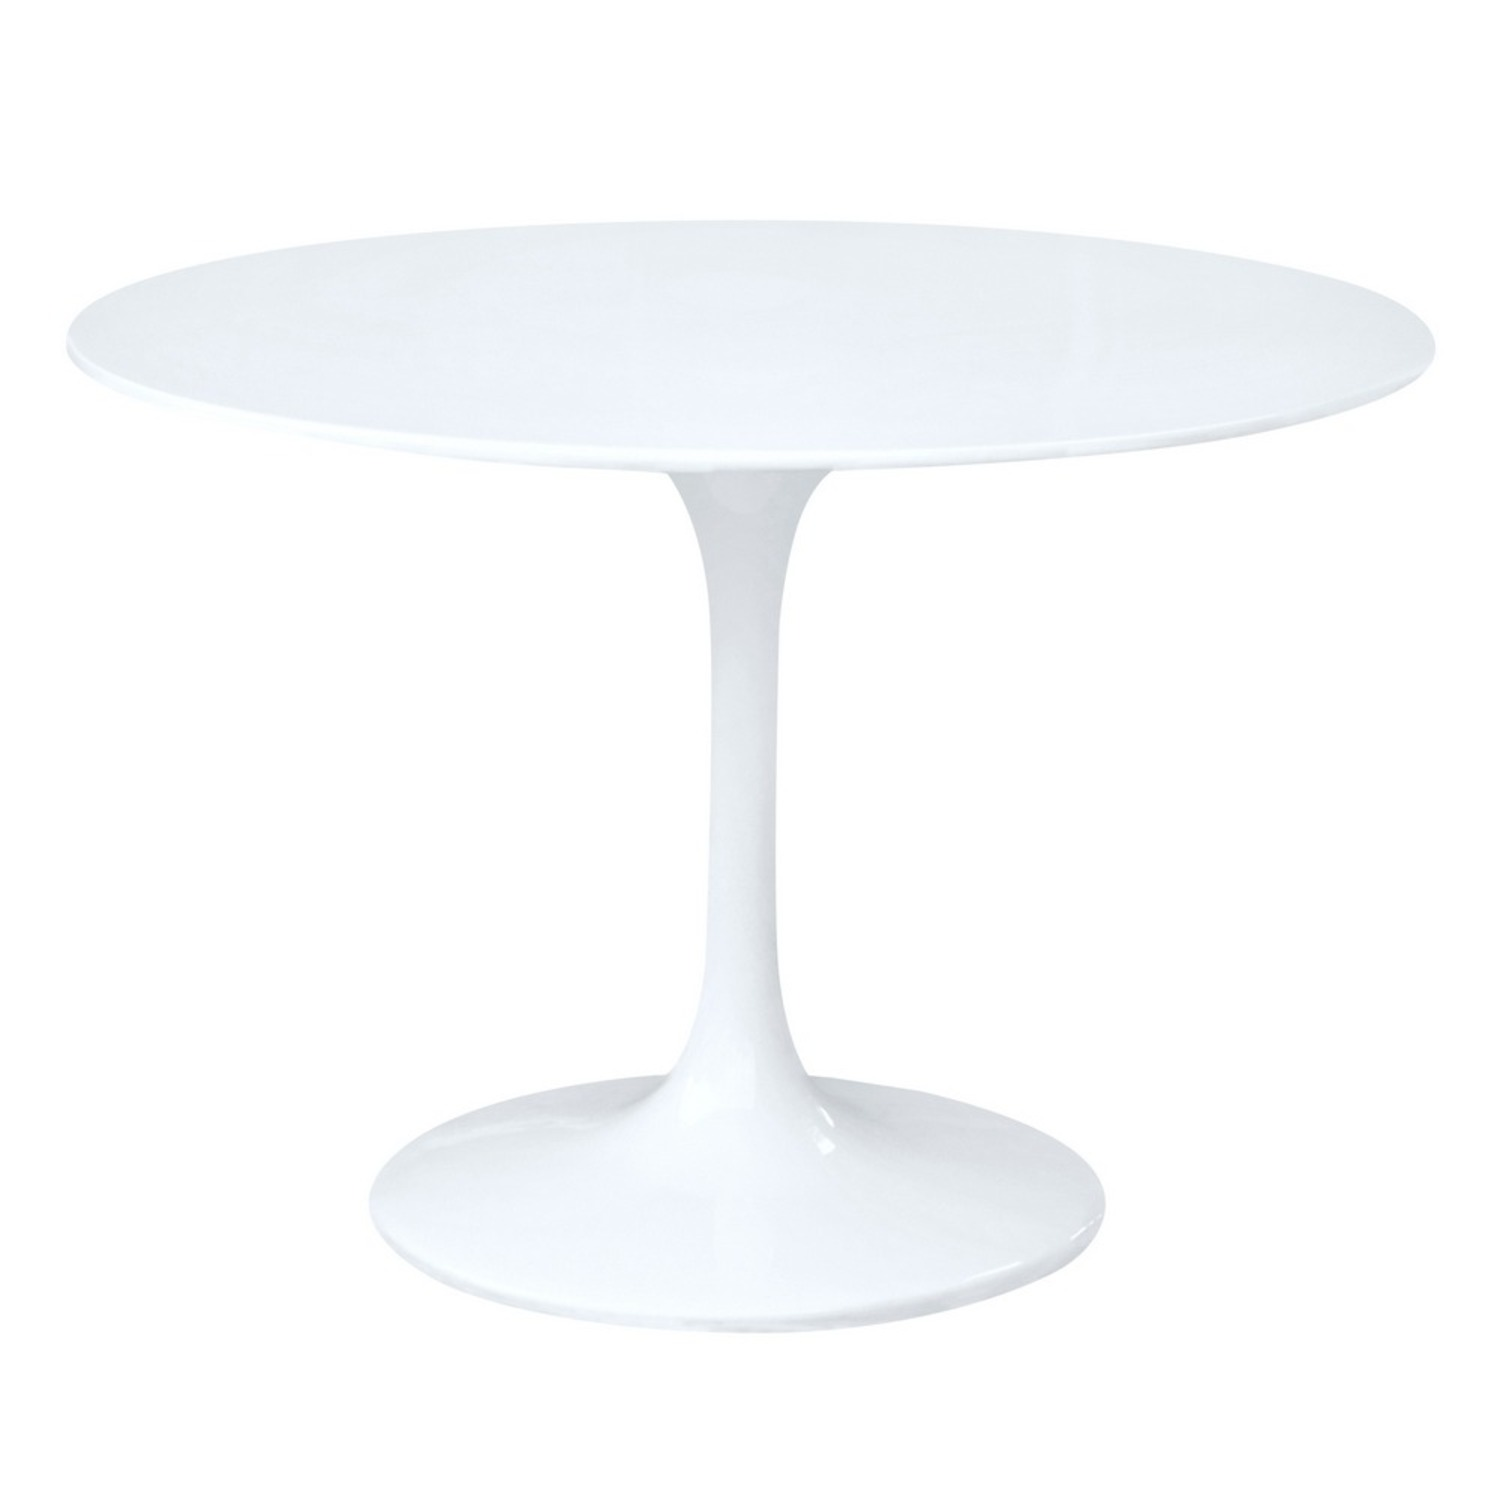 36-Inch Dining Table Molded In White Fiberglass - image-0